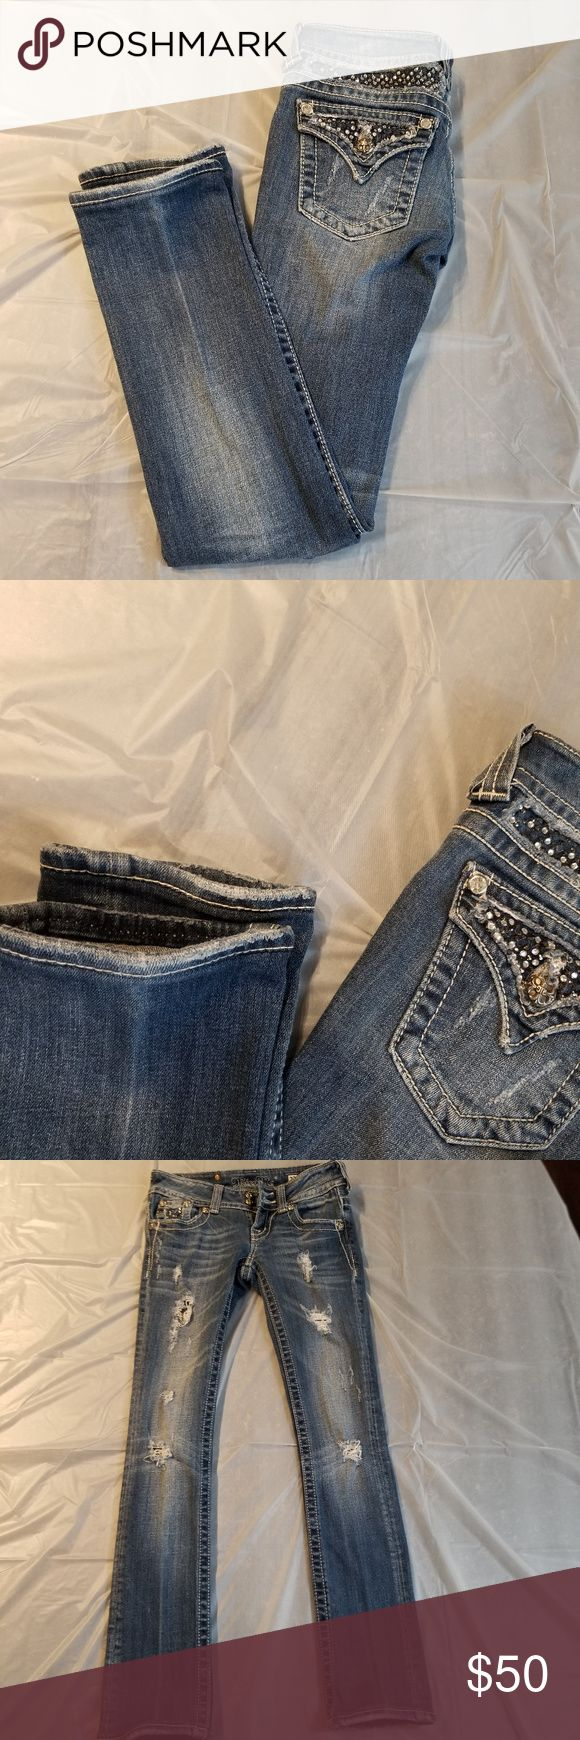 """Miss Me Skinny Jeans Size 23 Excellent preowned condition.  Lots of embellishments and distress denim.  I measured waist 13"""".  The inseam is 33. 98% cotton 2% elastane Miss Me Bottoms Jeans"""